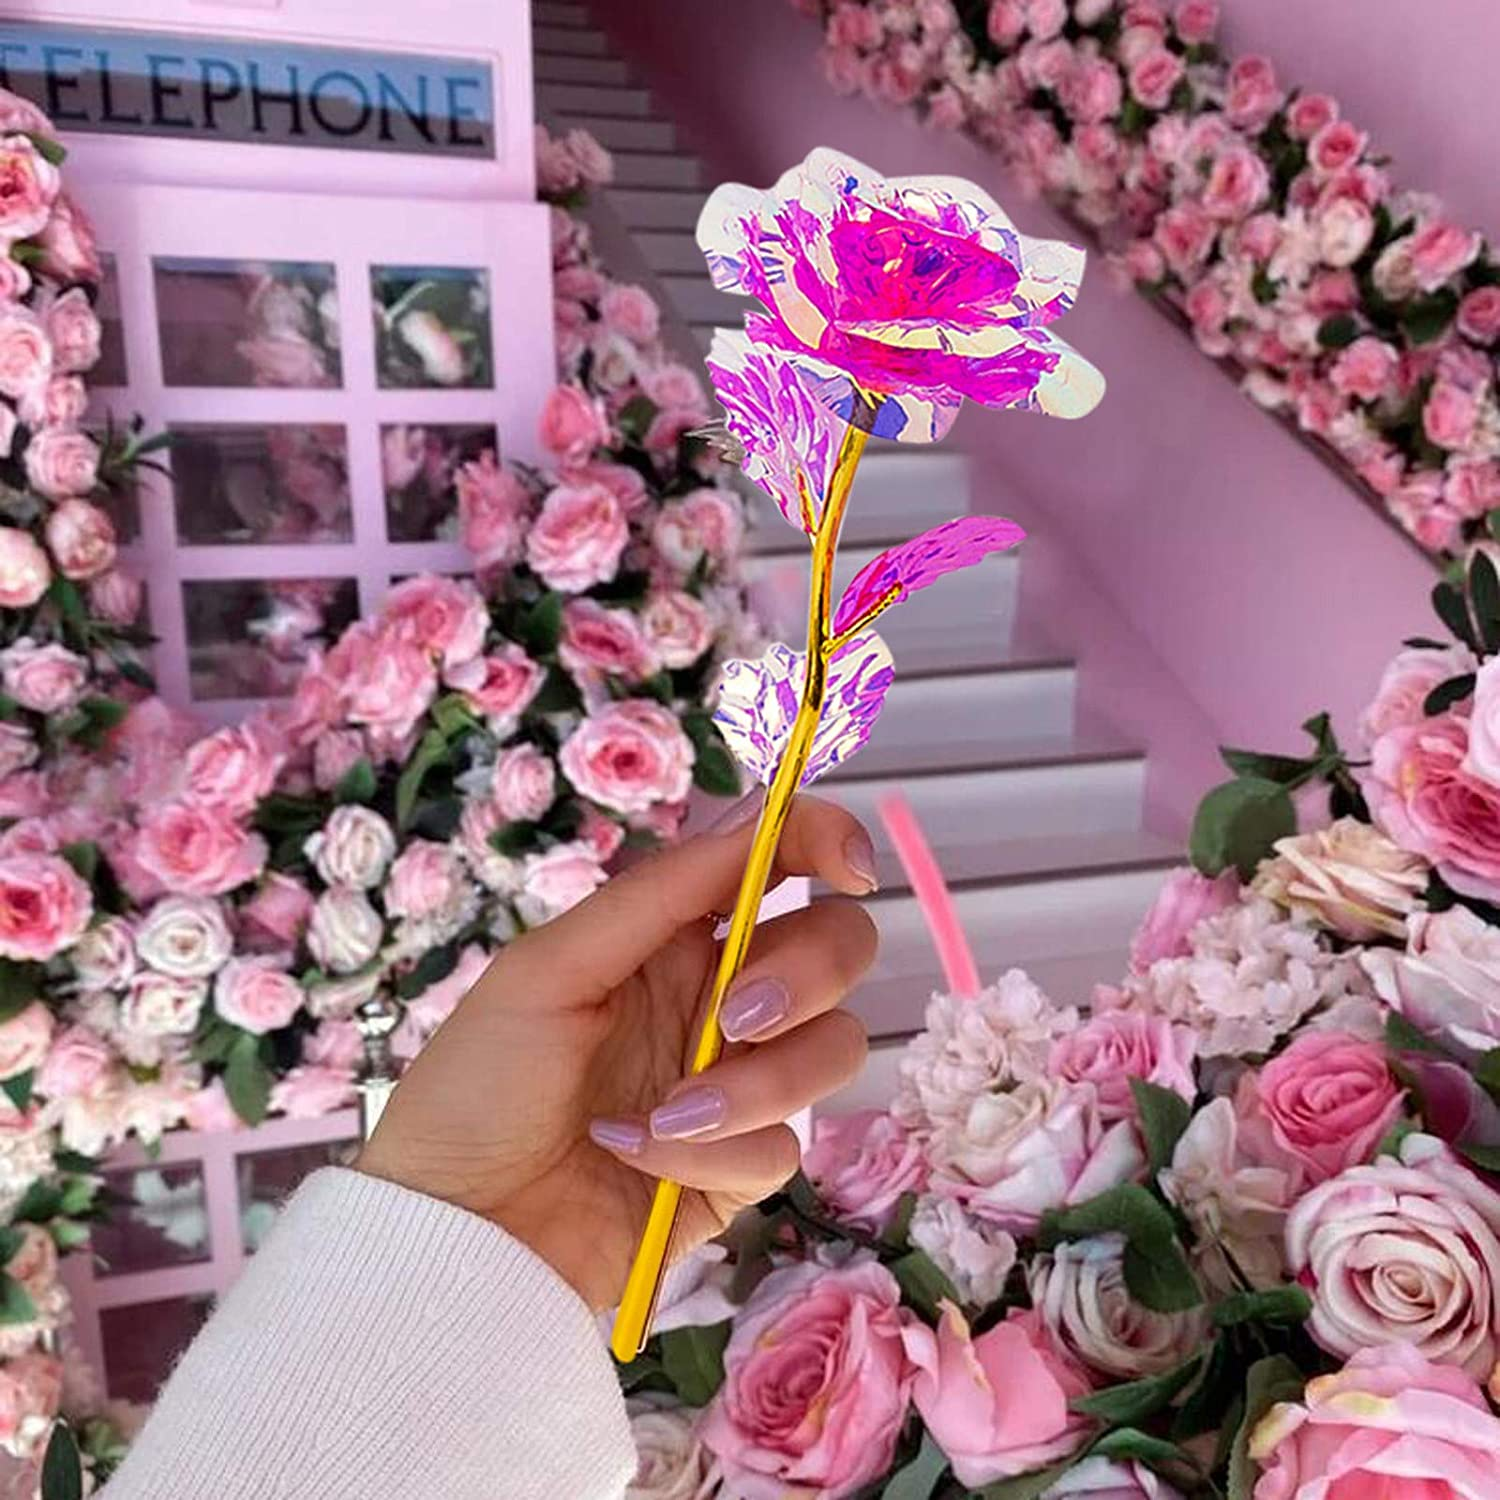 Valentines Day Wife 5-pack 24K Colorful Rose Artificial Flower Golden Plated Rose Home Decoration Luxury Gift for Her Birthday Women Anniversary Christmas Mothers Day Wedding Girlfriend